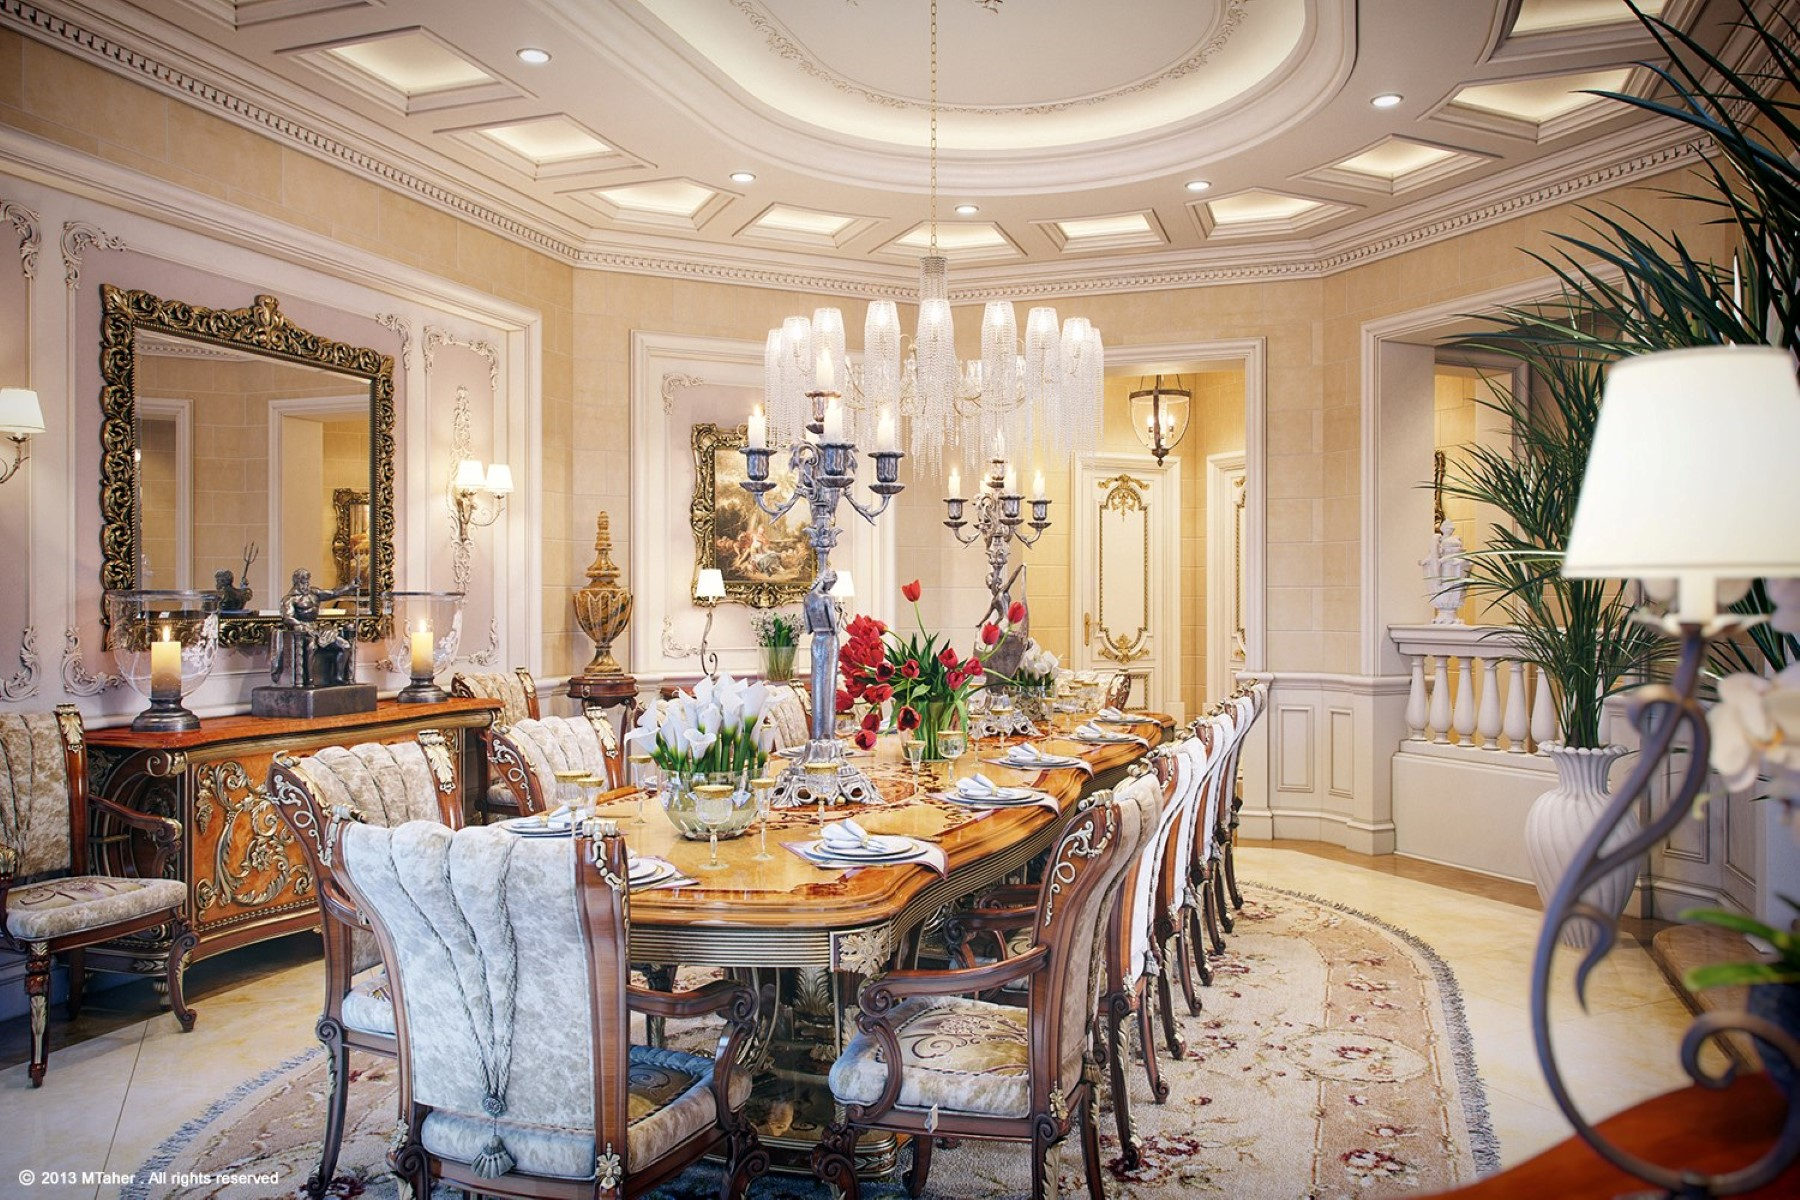 16 Impressive Dining Room Ceiling Designs Card From User Tstatnova In YandexCollections